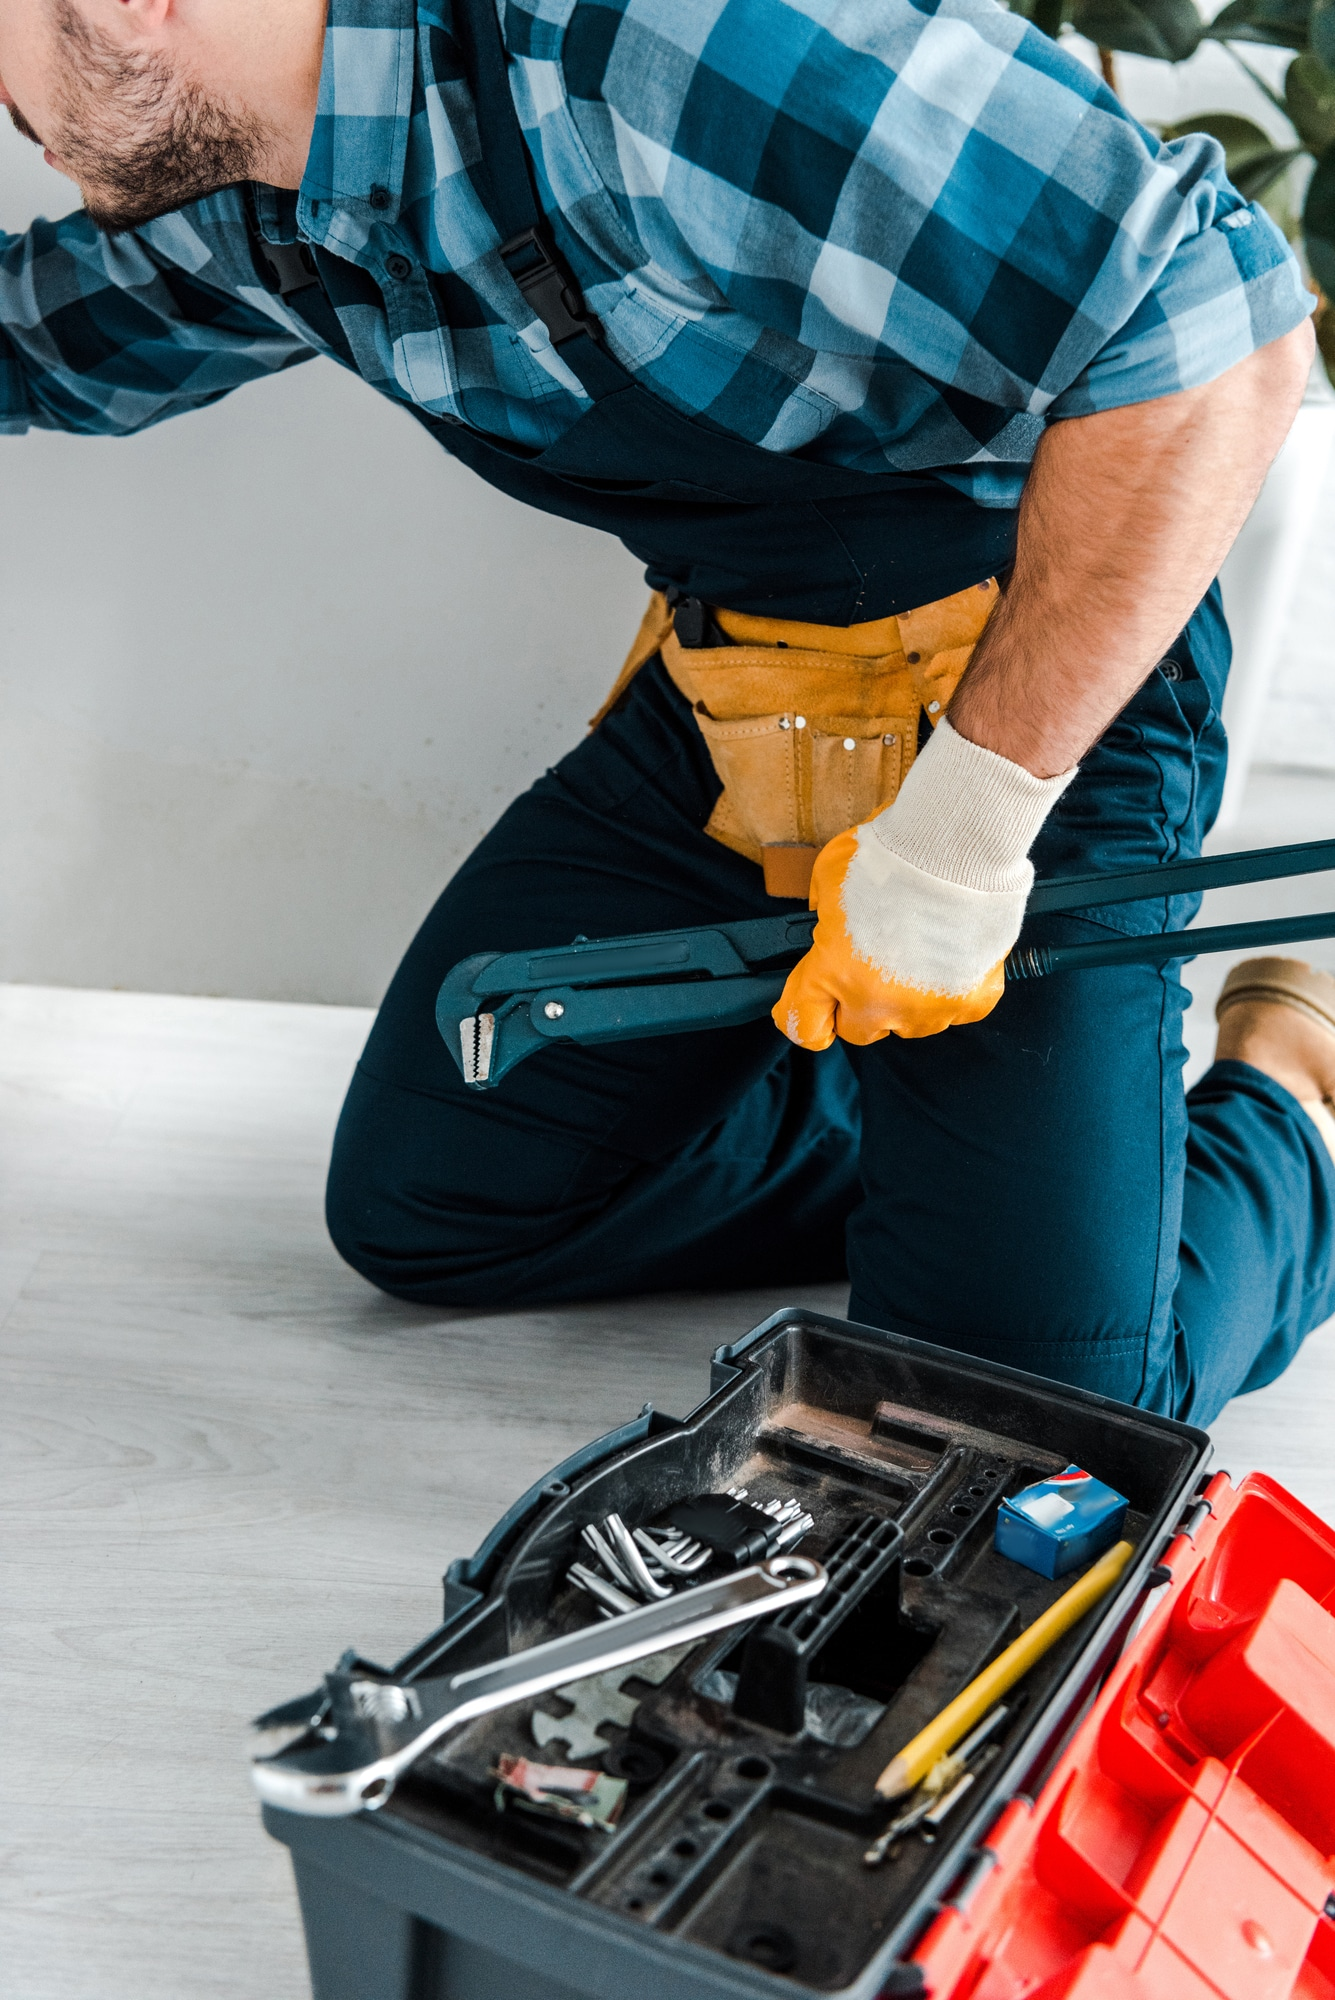 Boiler Not Working? Try These 4 Fixes Before Calling an Engineer